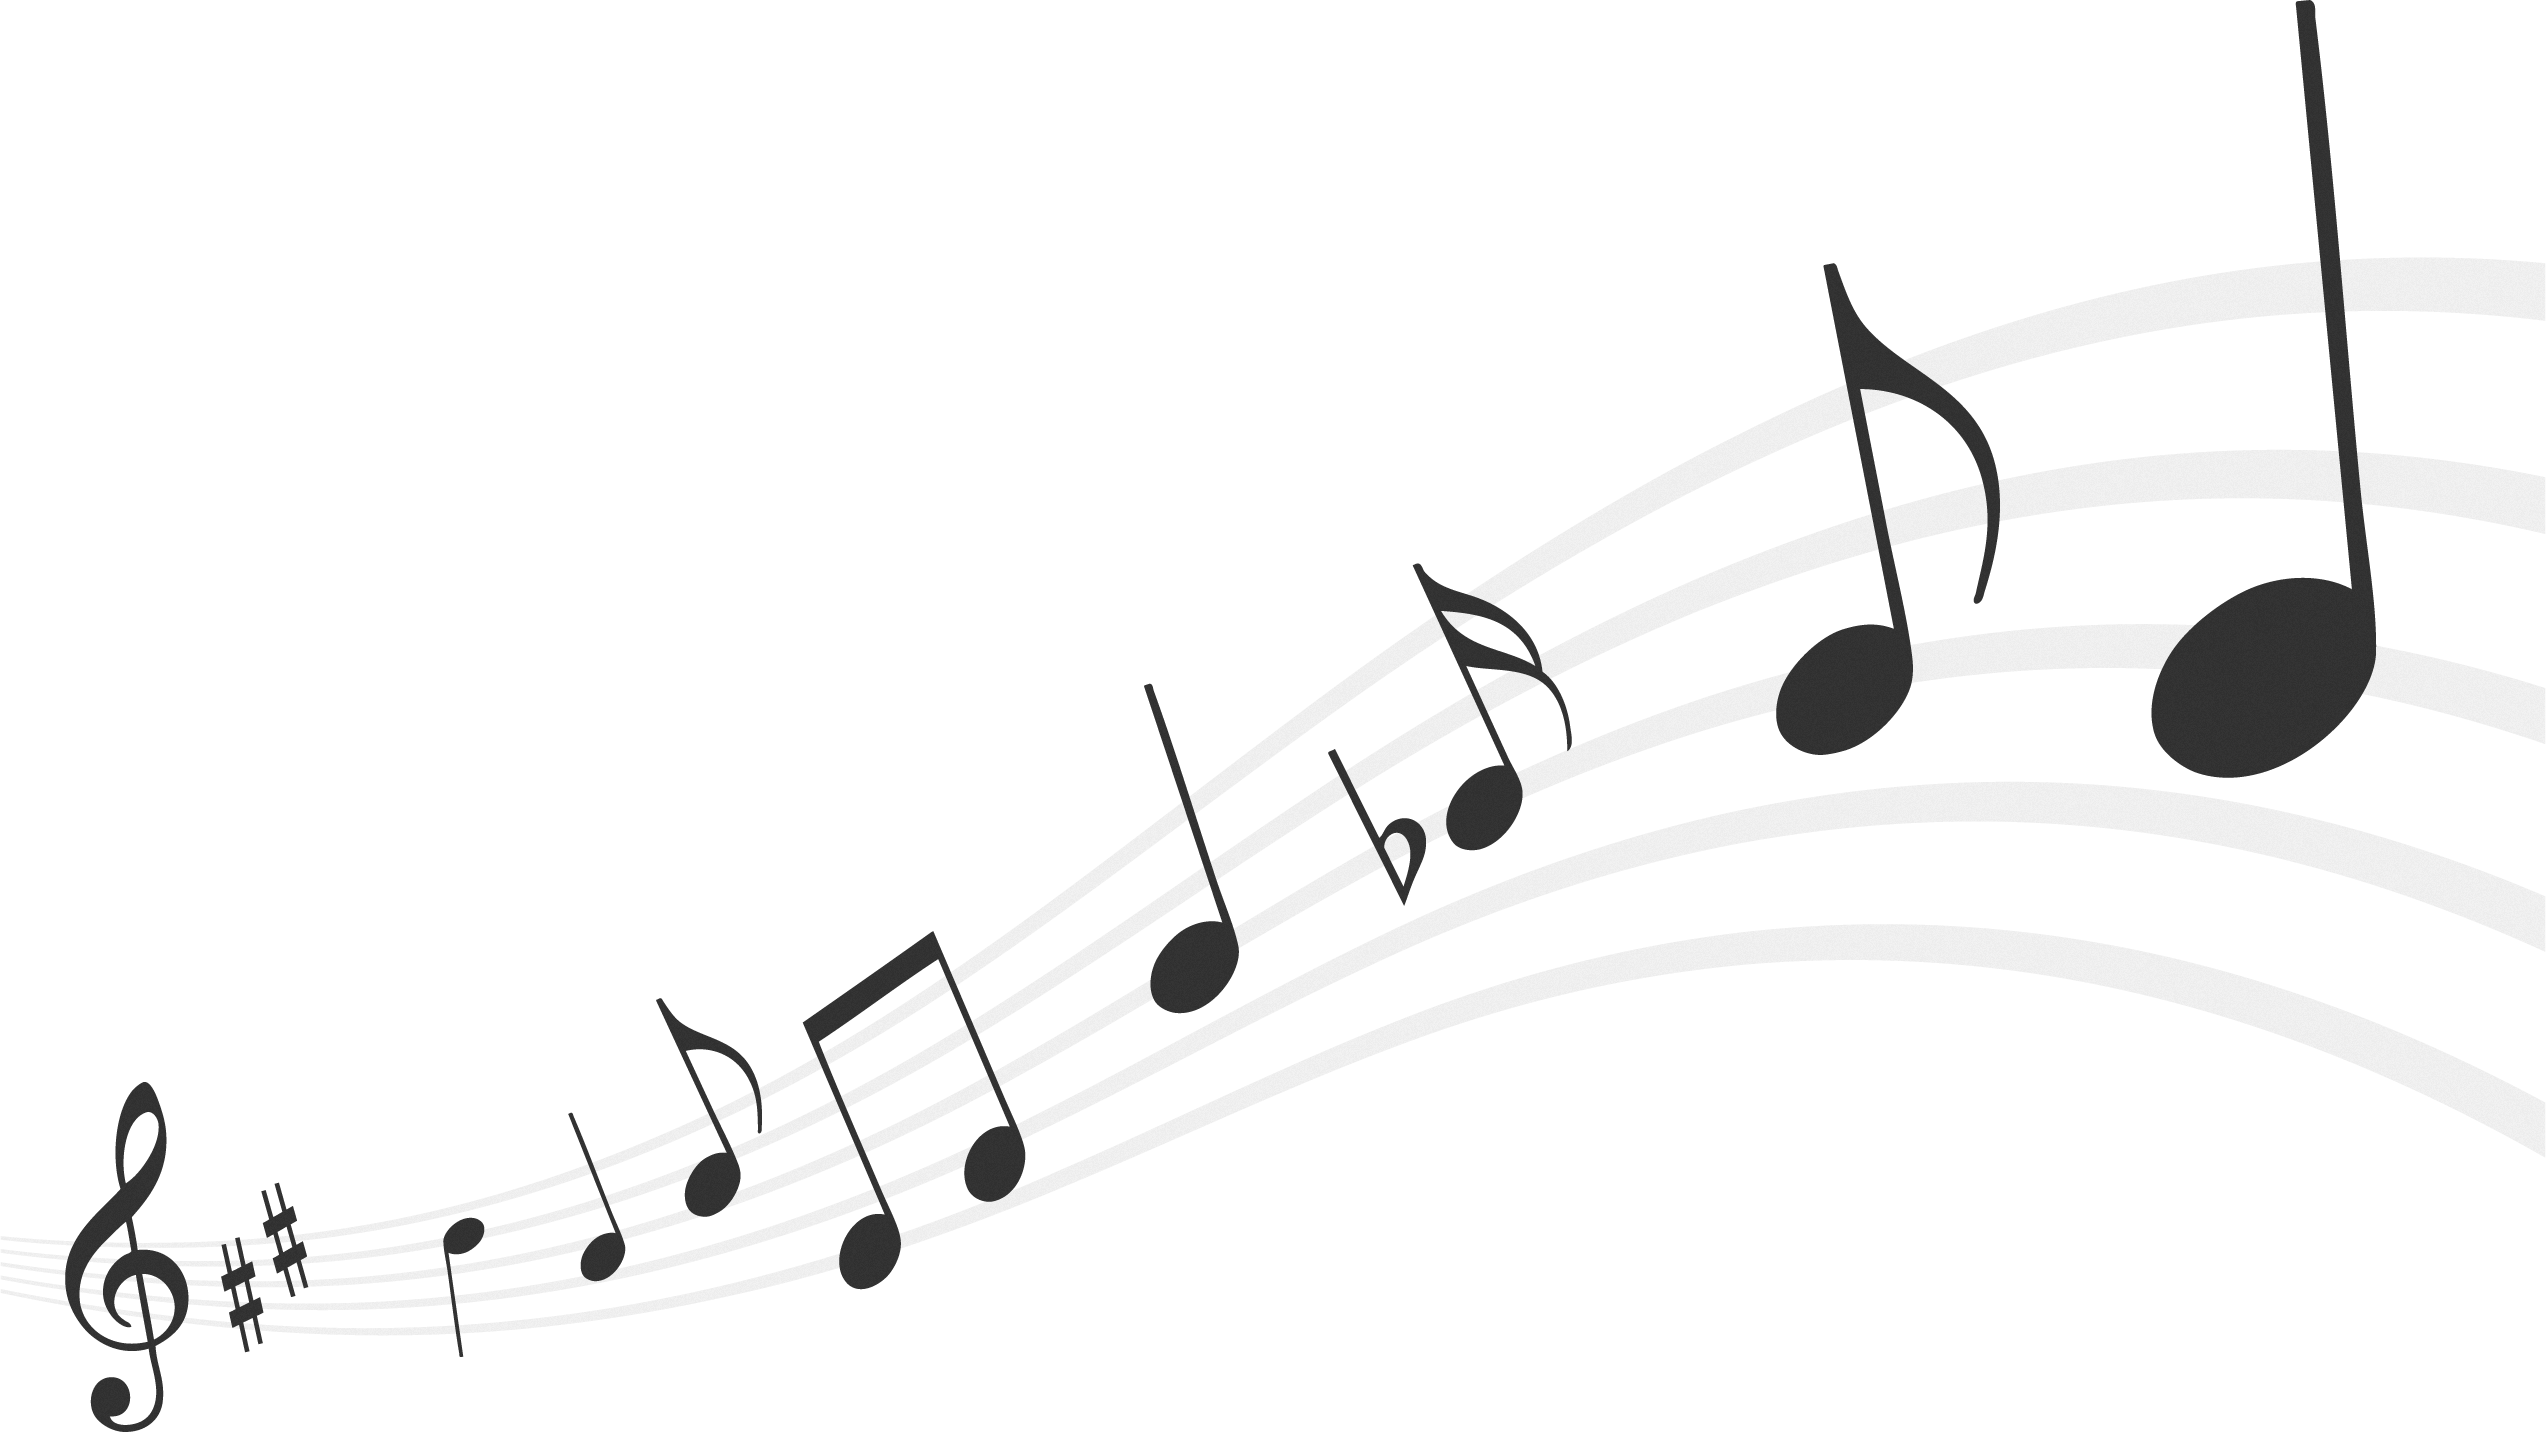 Music Notes Png - Music, Transparent background PNG HD thumbnail